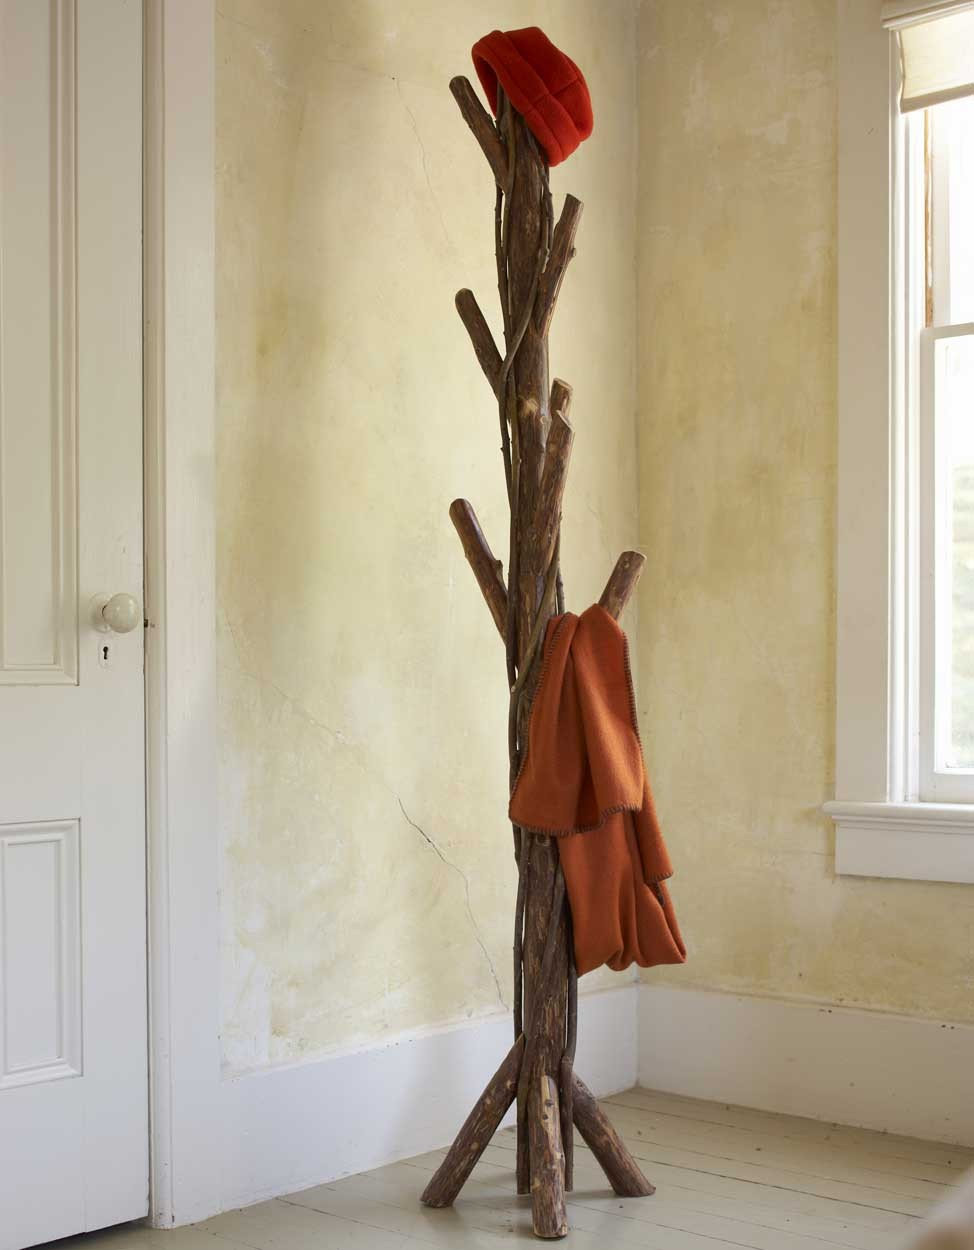 Twisted Vine standing Coat Rack on the corner of a room near thw white window